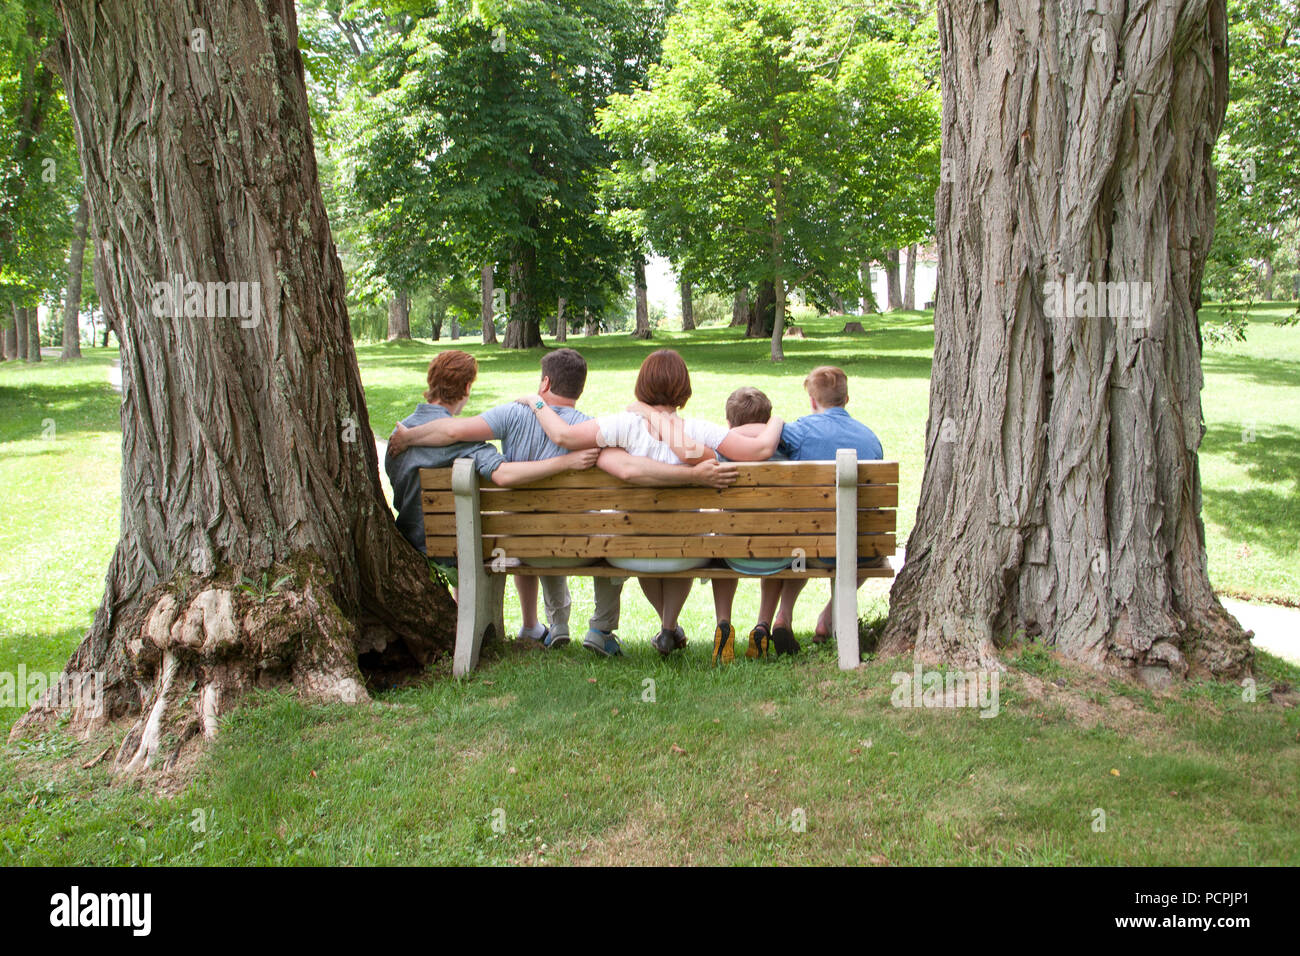 A Lovely Family Of Gingers Sits Together On A Park Bench Viewed From